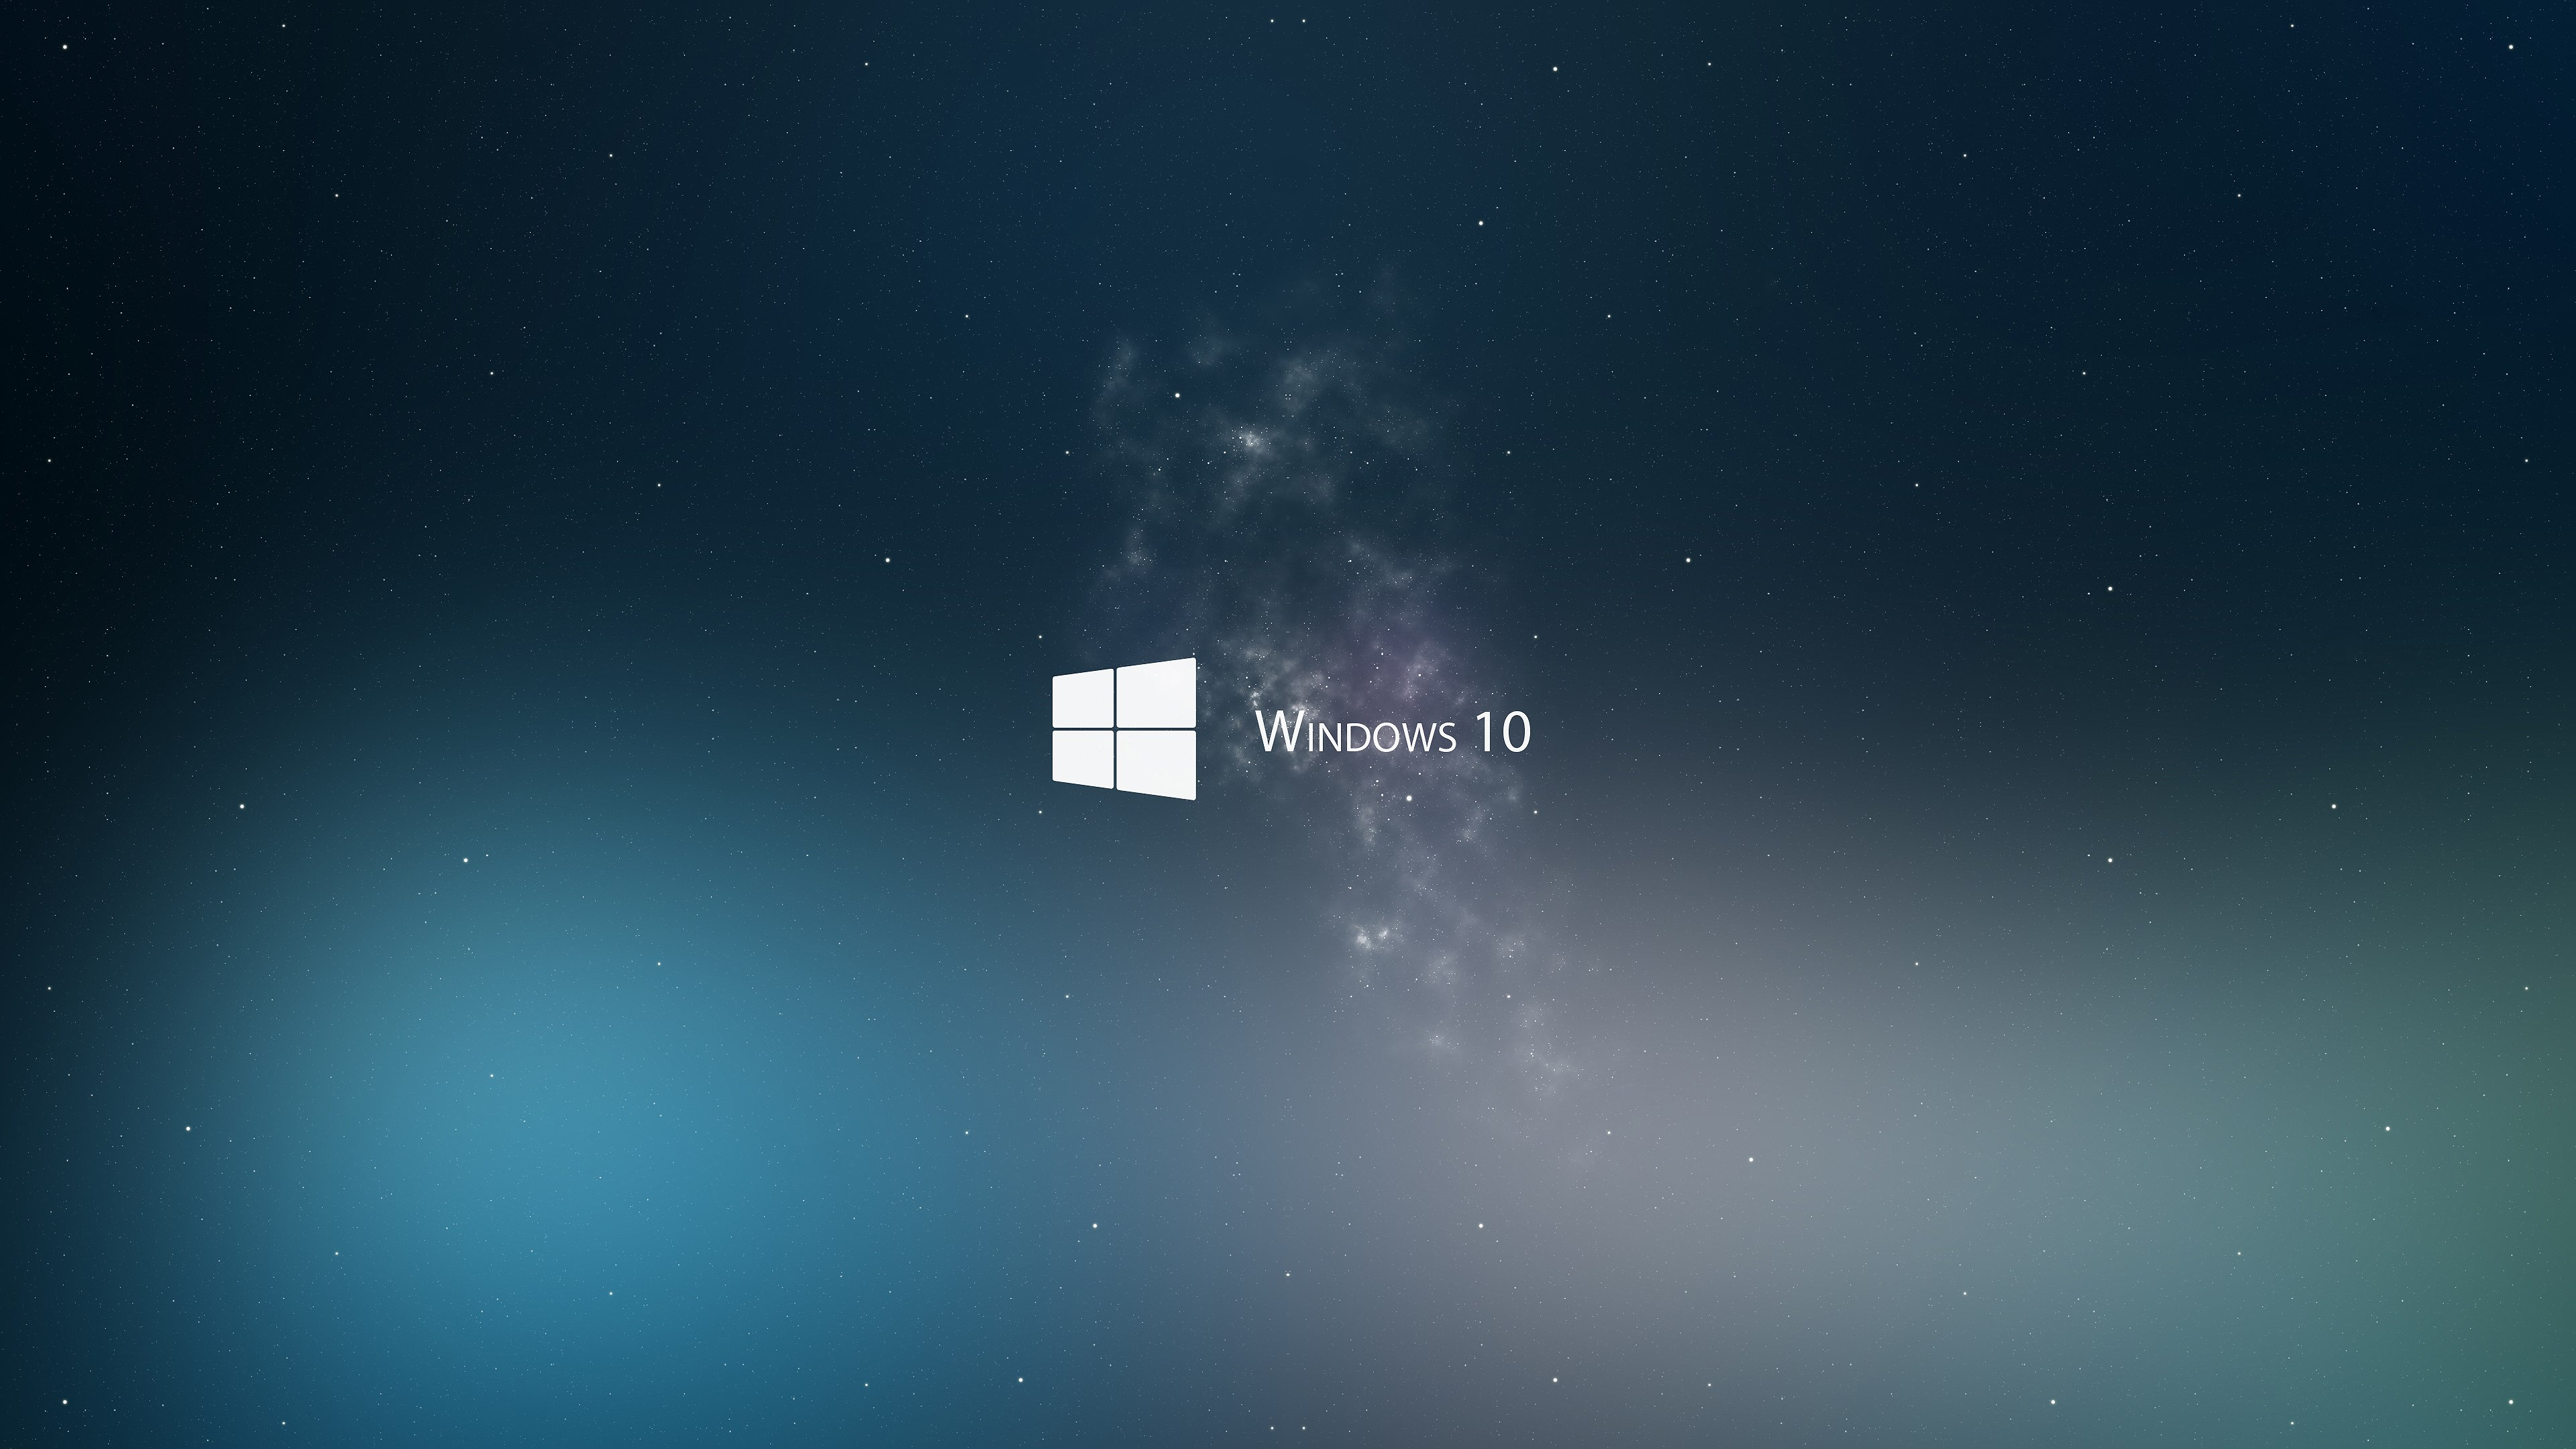 63 windows 10 hd wallpapers | background images - wallpaper abyss